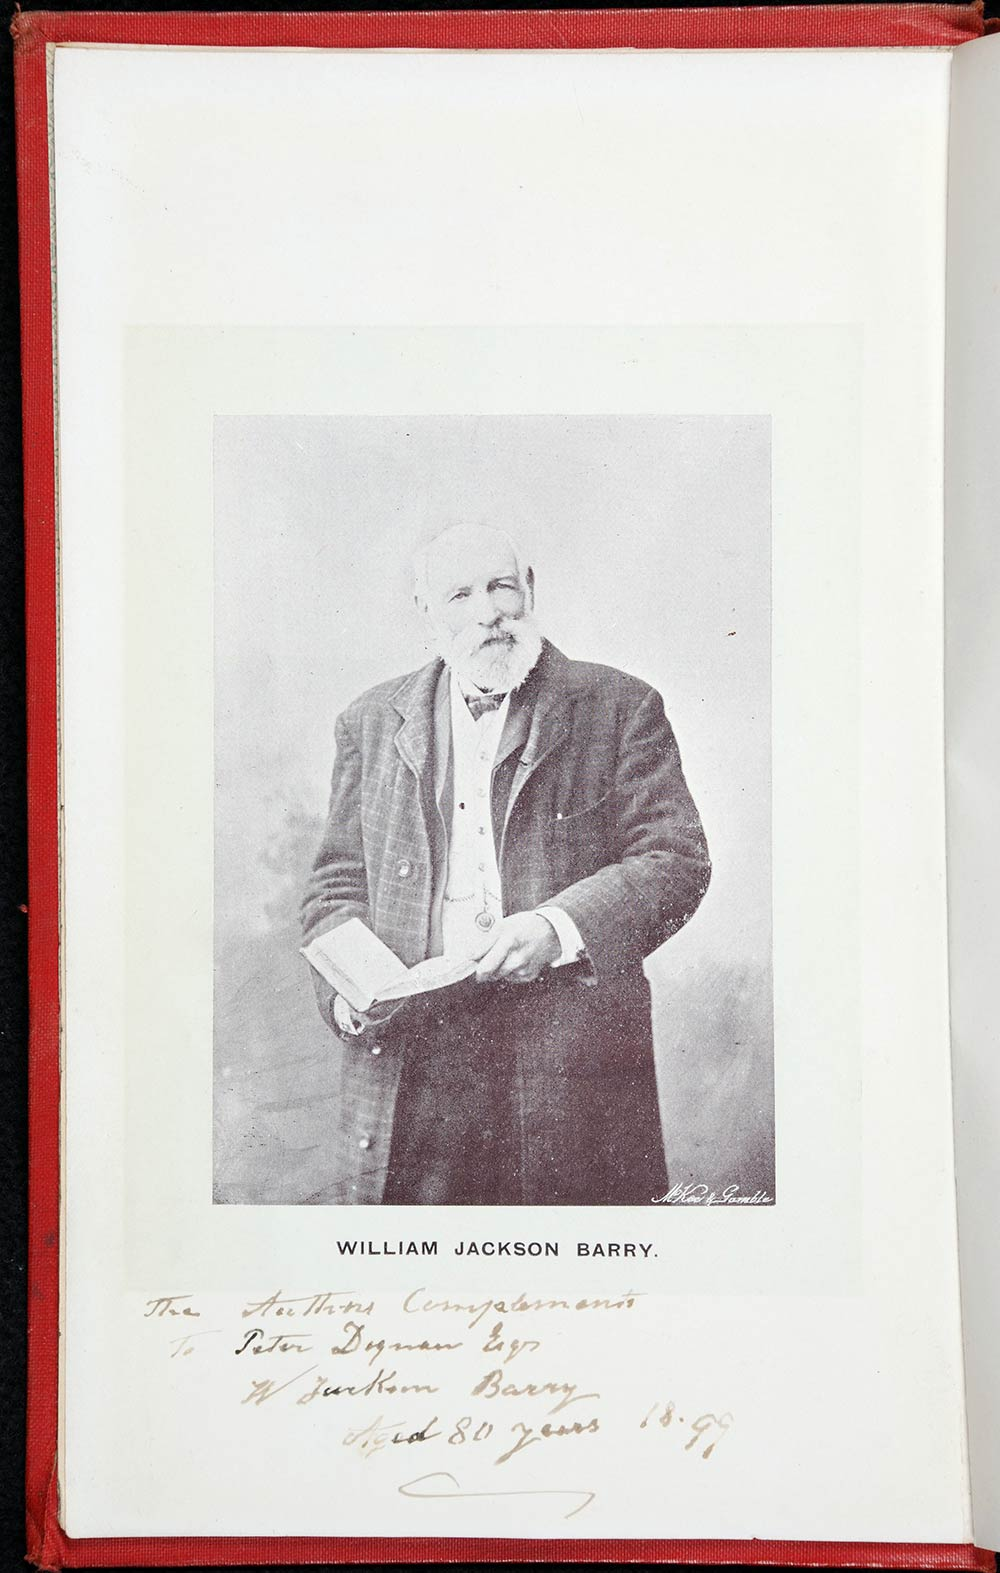 William Jackson Barry. <em>Past & present, and men of the times</em>. Wellington: McKee & Gamble, 1897.